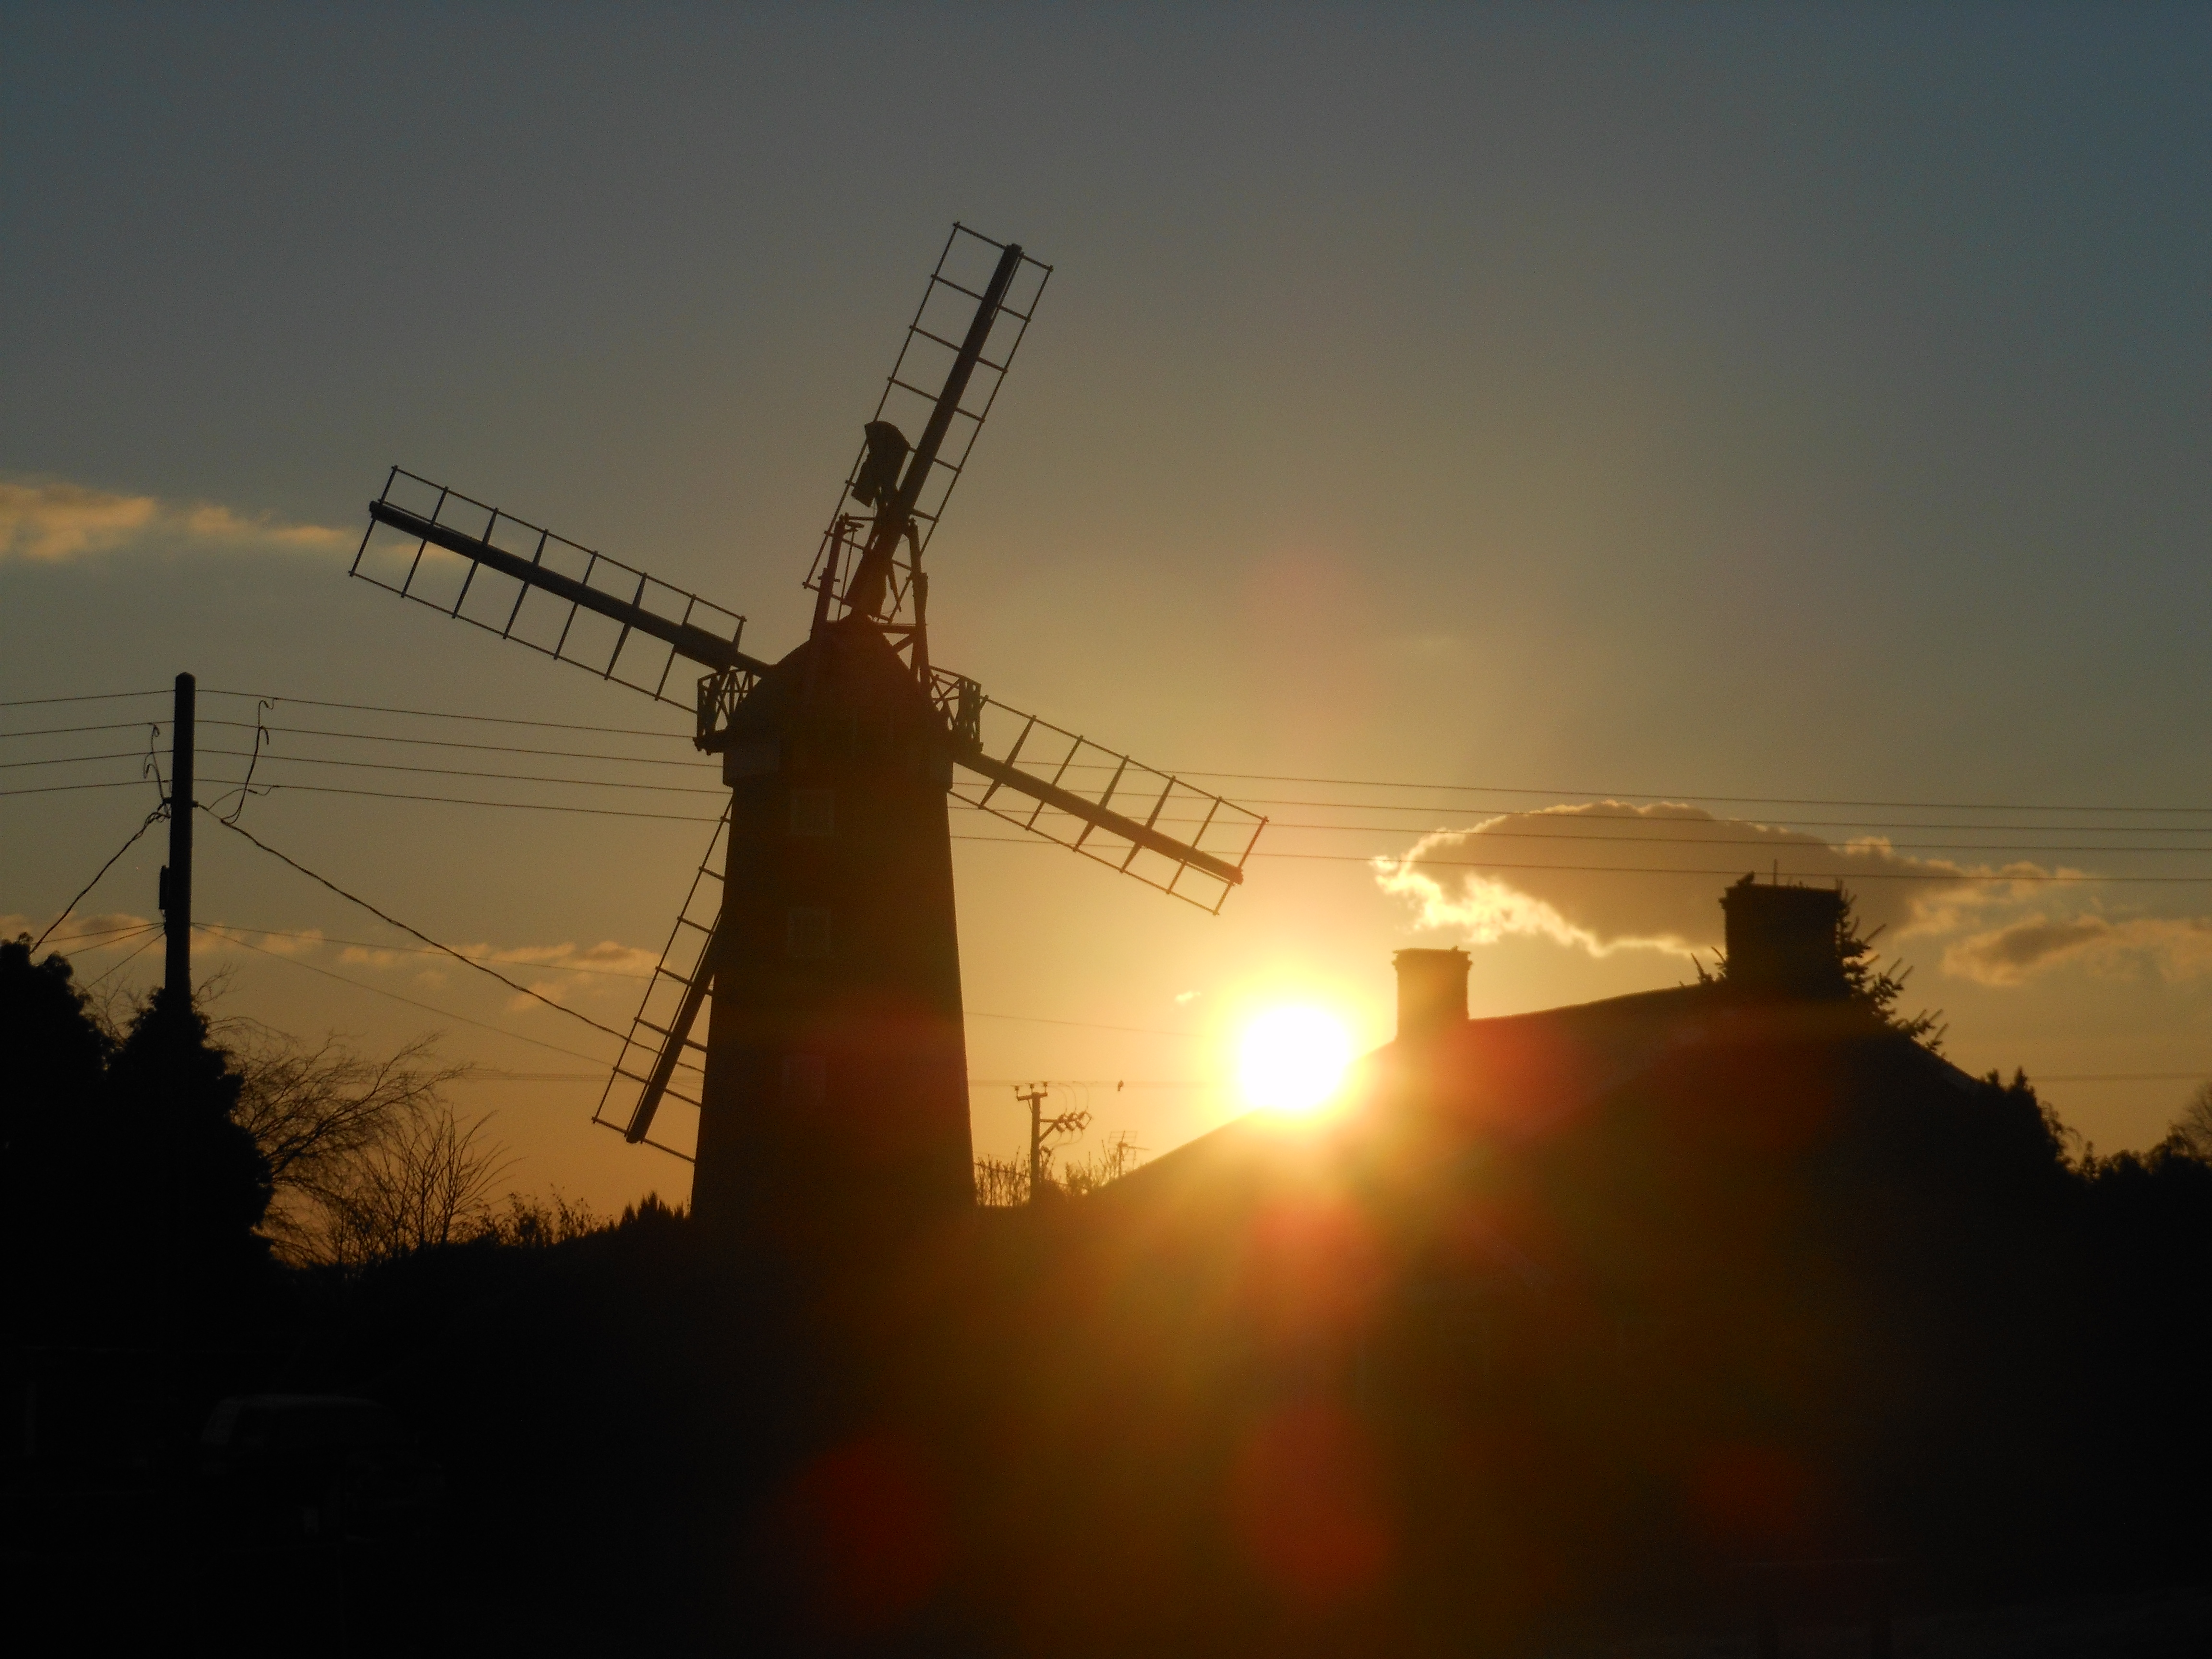 wicklewood mill photo